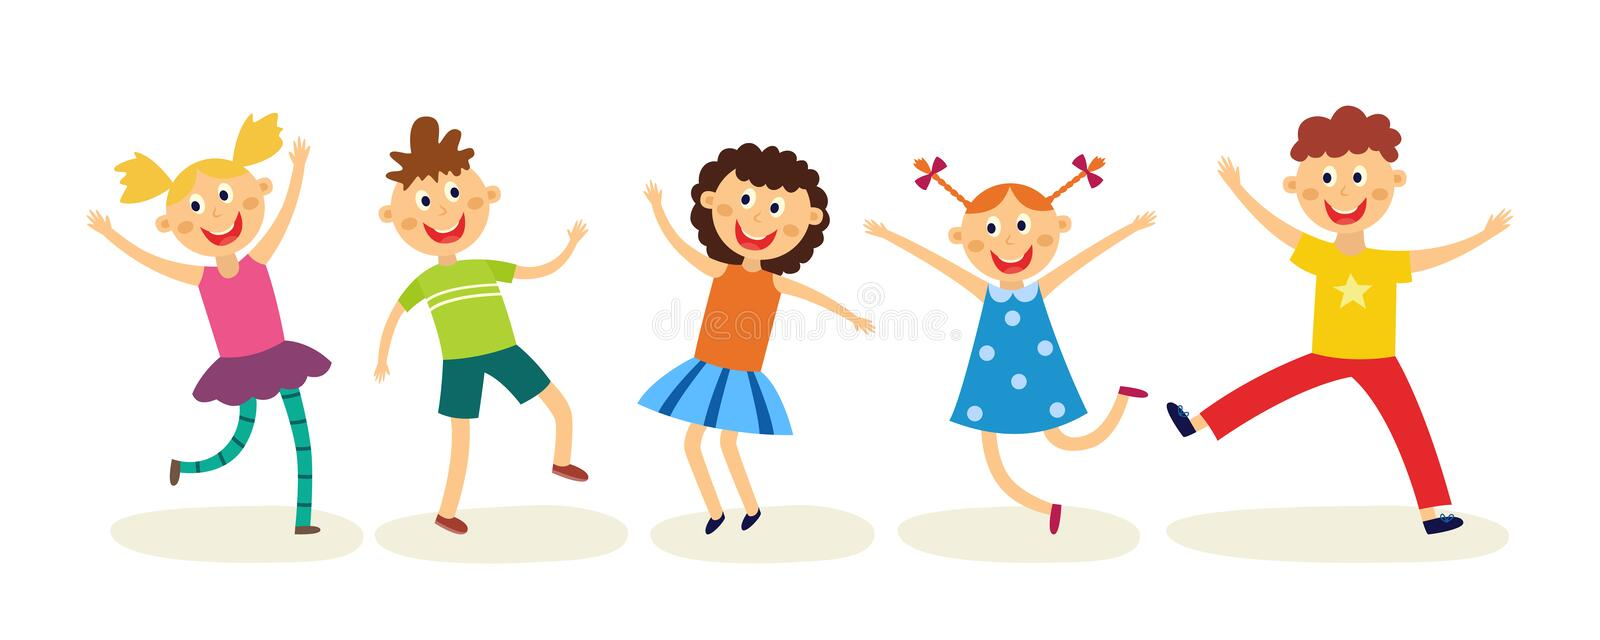 Dancing kids set in flat style - happy joyful children have fun, jump and dance isolated on white background. Cartoon vector illustration of cute active little vector illustration